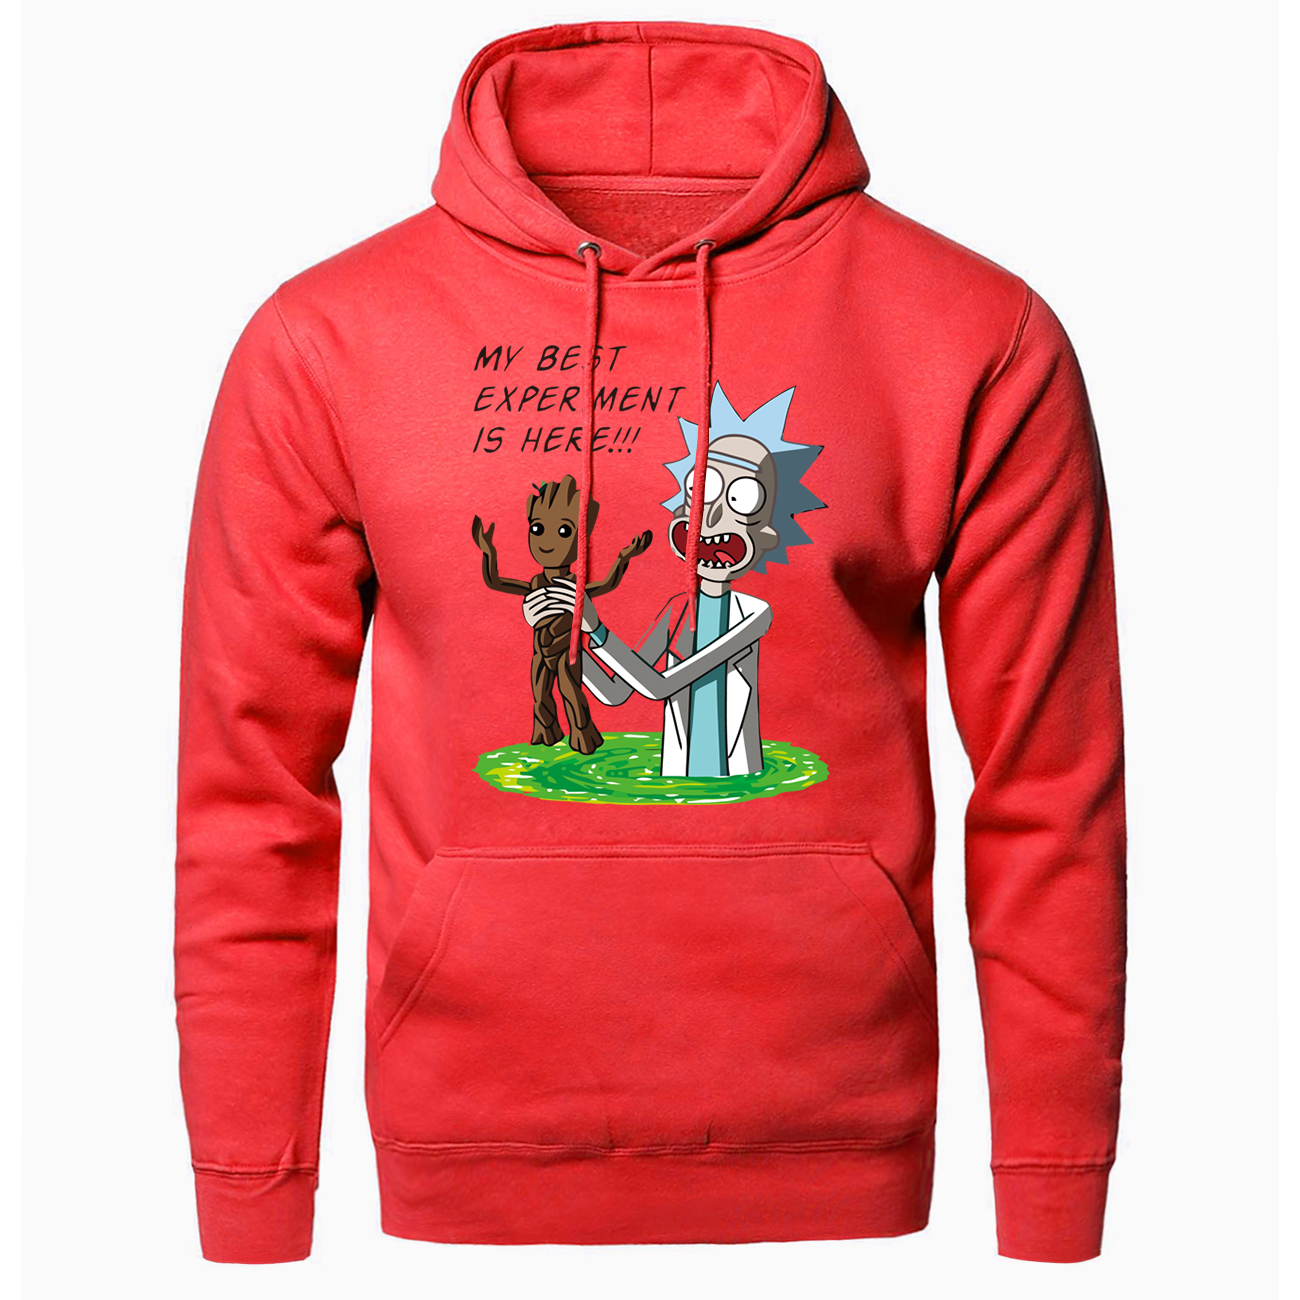 Man Handsome Jacket 2020 Spring Autumn Popular Coat Men Fashion Groot Cartoon Printing Hooded Hoodie Casual Comfort Clothing